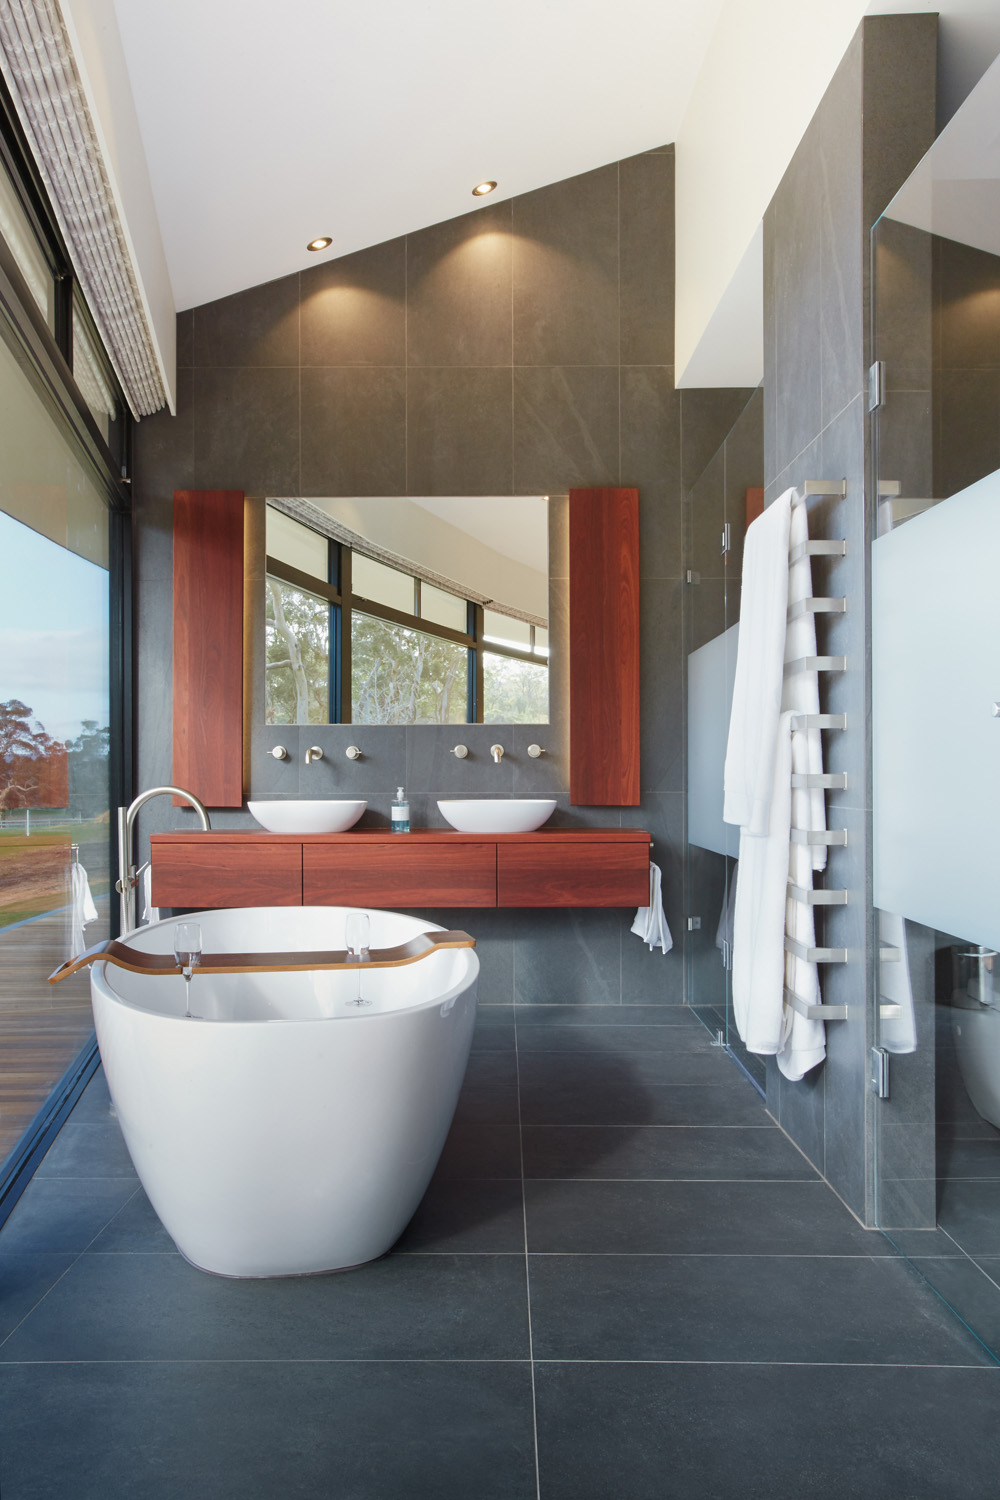 A freestanding tub by the window is made for relaxation